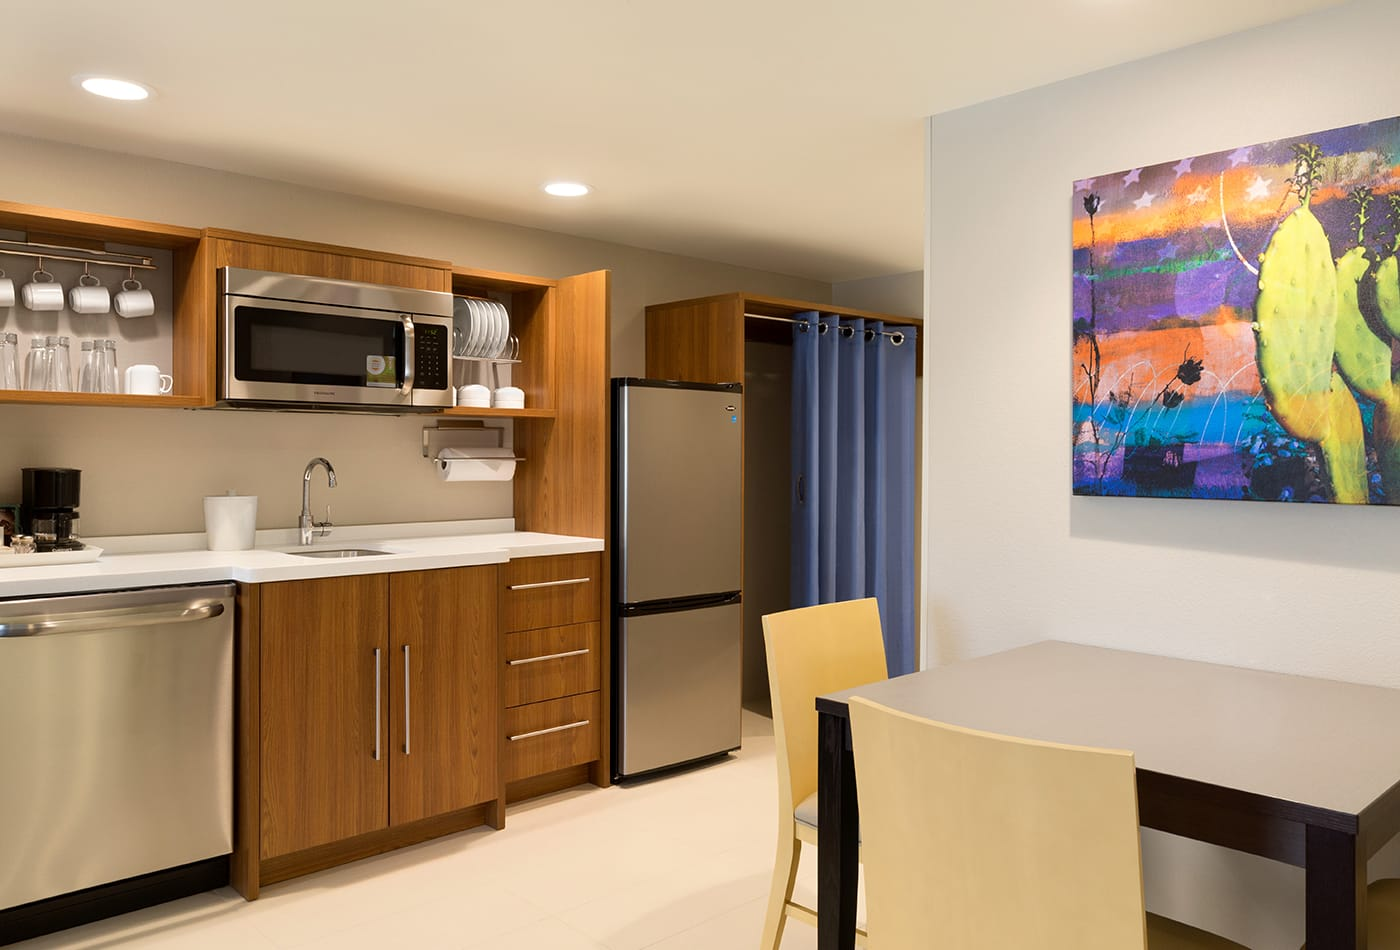 Home2 Suites by Hilton Glendale-Westgate